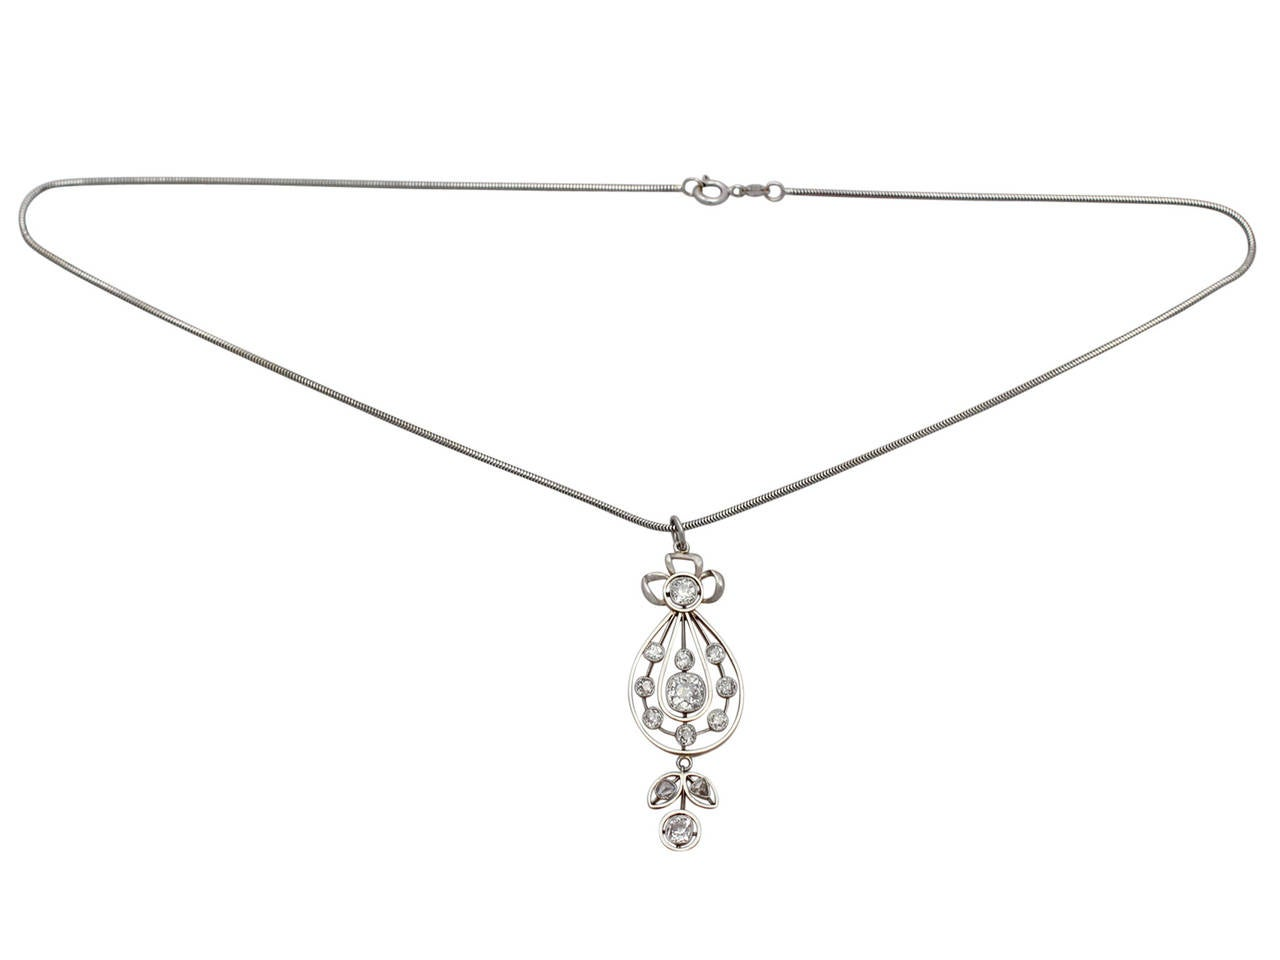 A stunning, fine and impressive antique Victorian 2.14 carat diamond, 15 karat yellow gold, platinum set pendant; part of our diverse collection of antique jewelry and estate jewelry  This stunning antique diamond pendant has been crafted in 15k